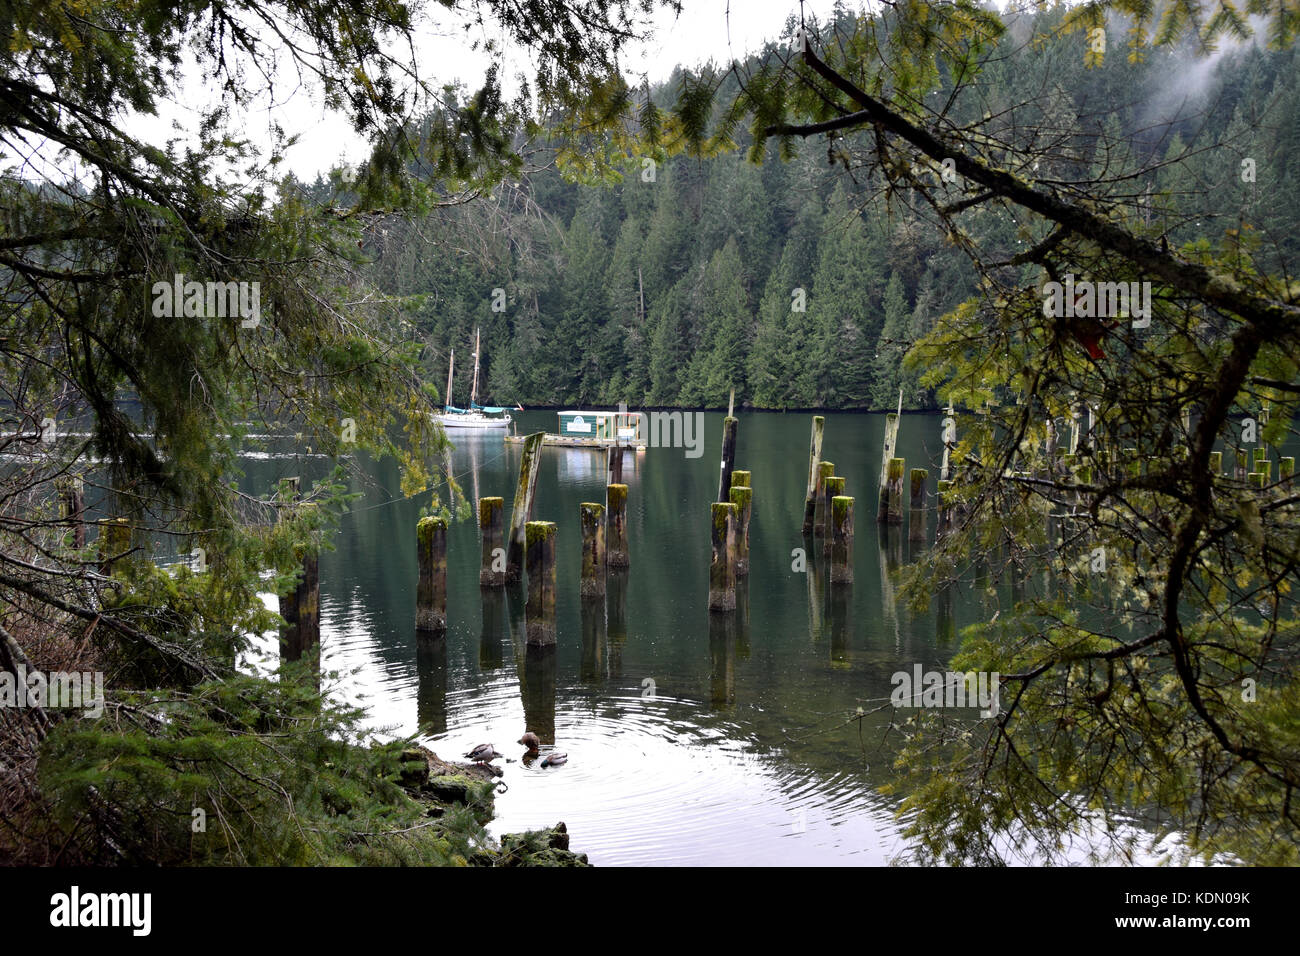 Hiking near Witty's Lagoon - Vancouver Island, BC, Canada - Stock Image